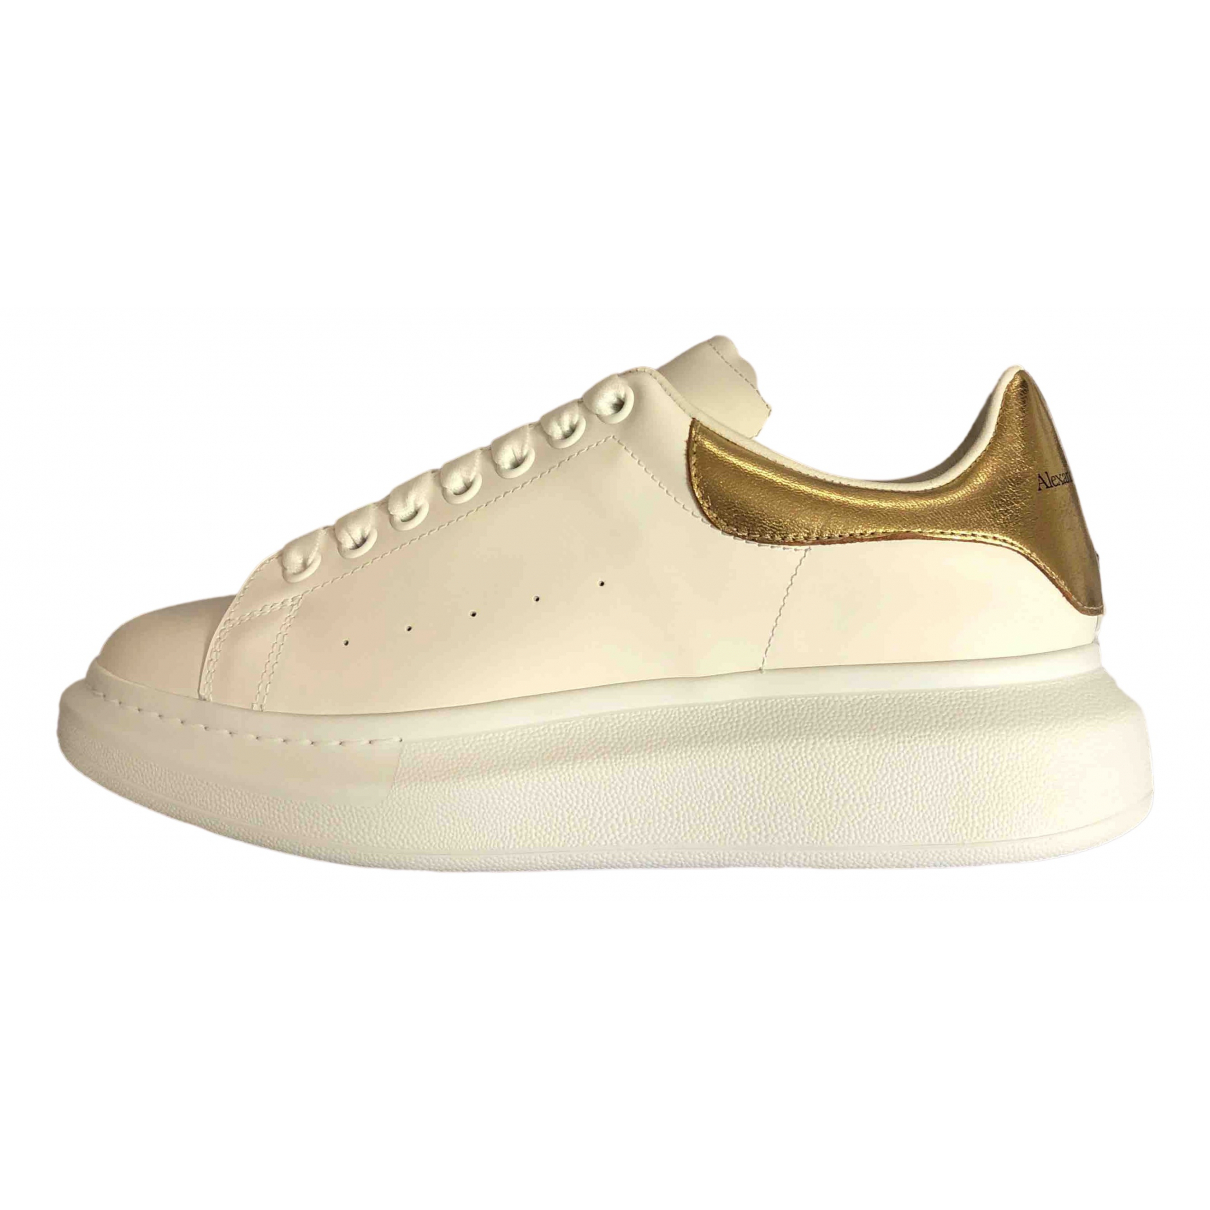 Alexander Mcqueen Oversize White Leather Trainers for Men 41 EU